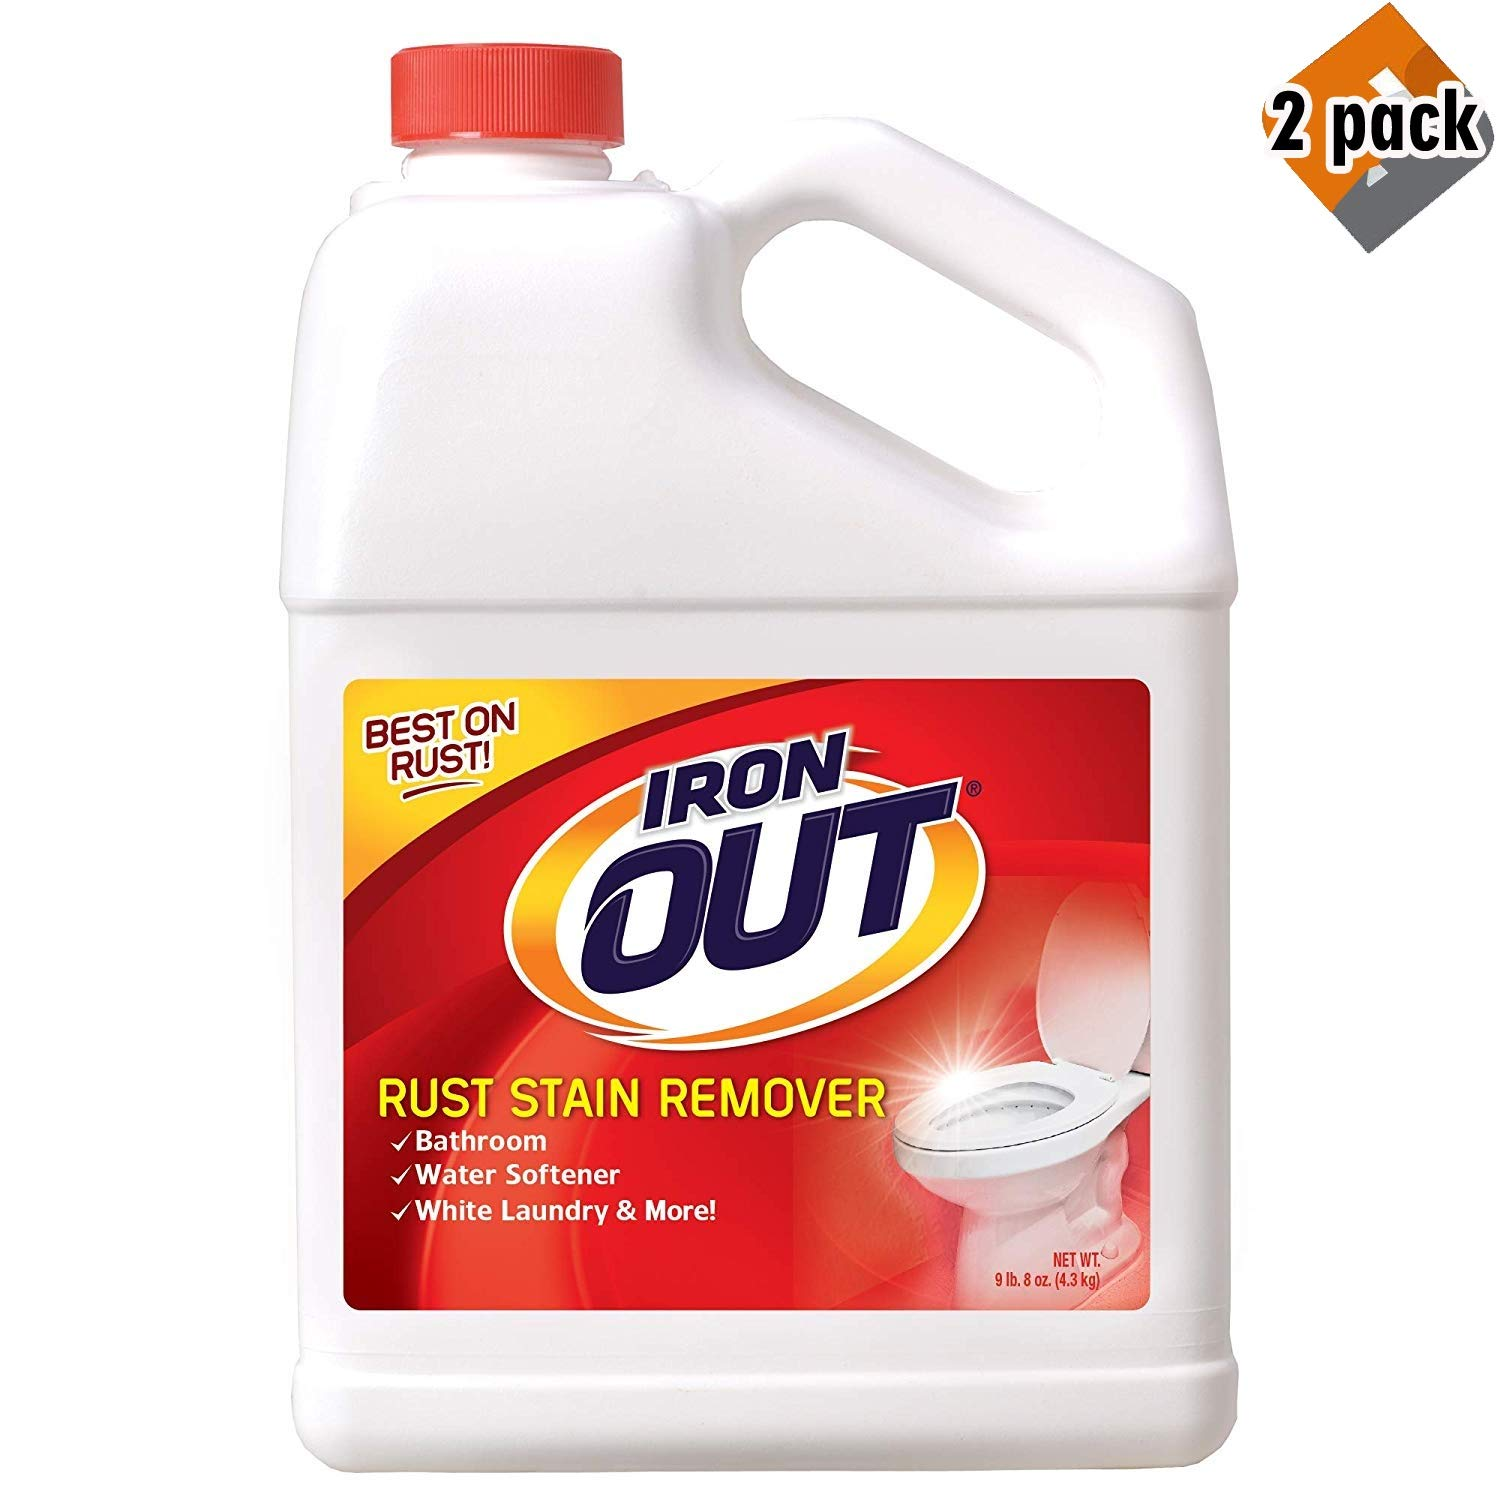 Summit Brands Iron Out Rust Stain Remover Powder, 9.5 lb. Bottle - 2 Pack by Summit Brands